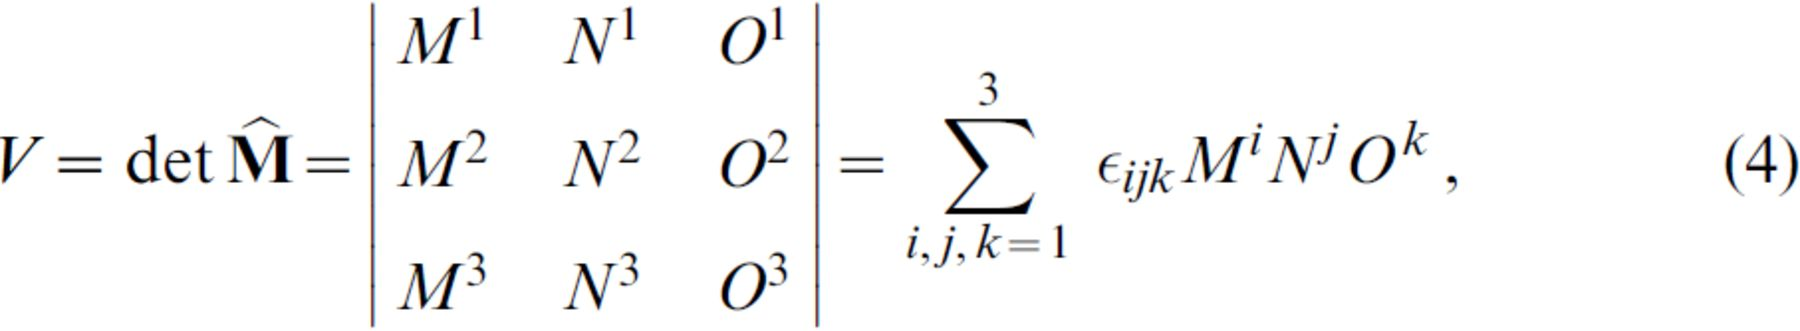 Interpolation Of Ray Theory Traveltimes Within Ray Cells